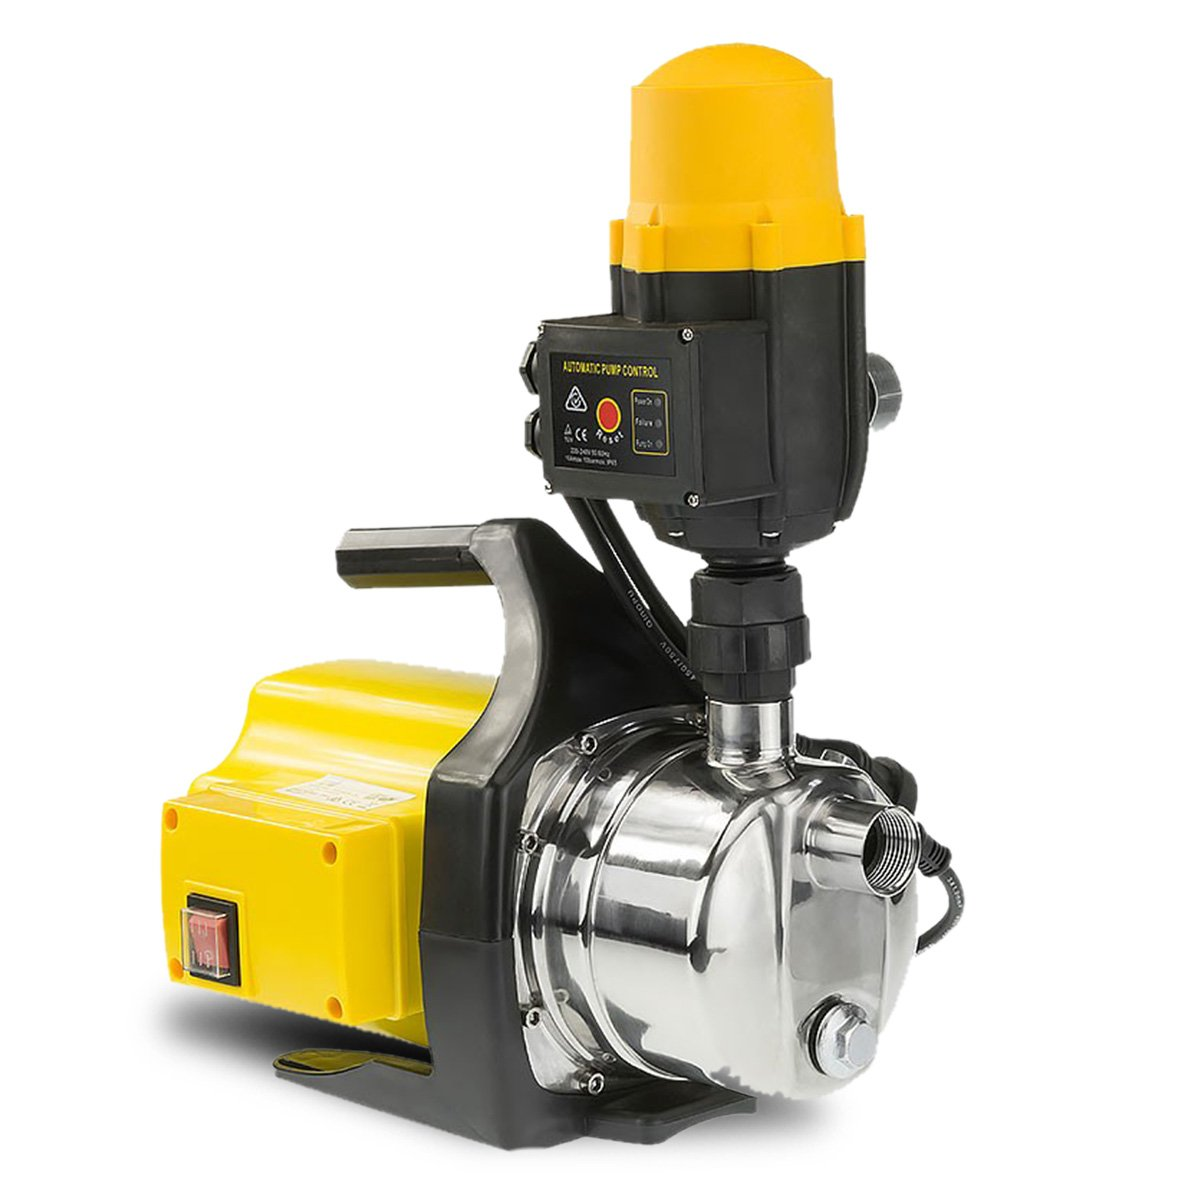 1200w Weatherised stainless auto water pump - Yellow - $343.3